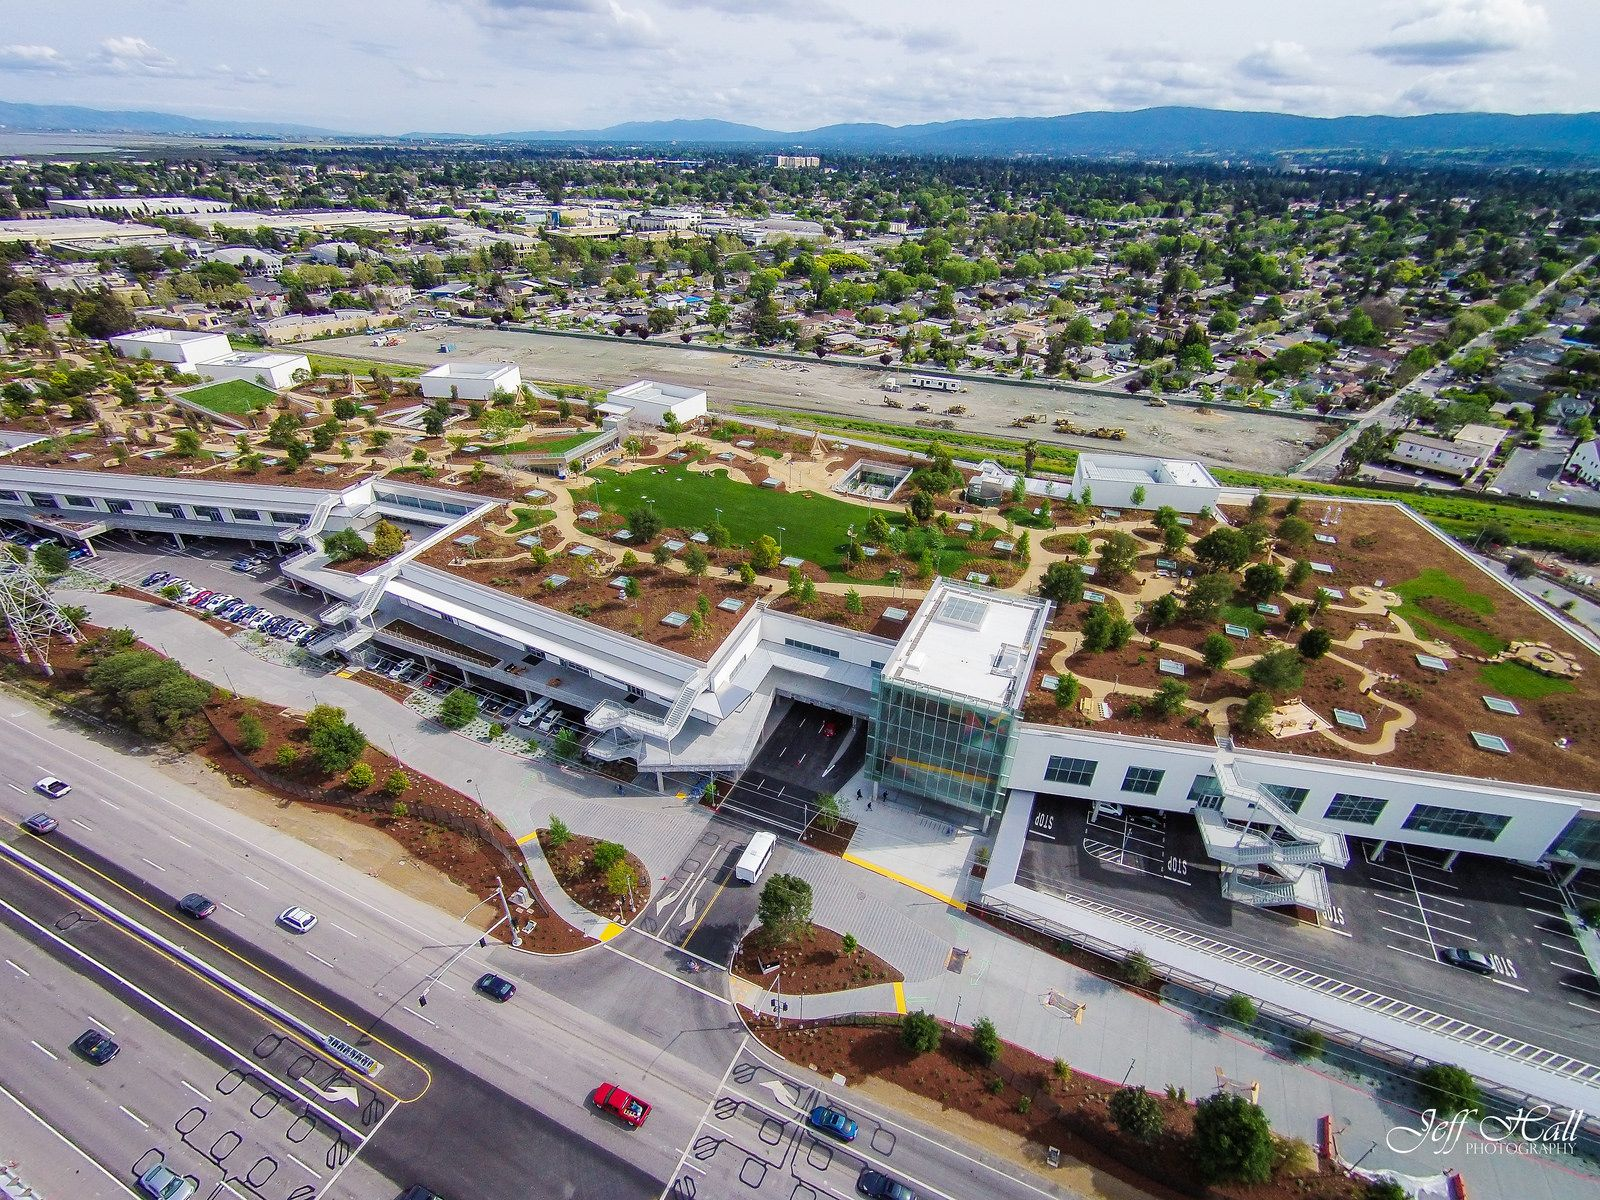 Facebook Headquarters, Menlo Park, California, United States - Frank Owen Gehry